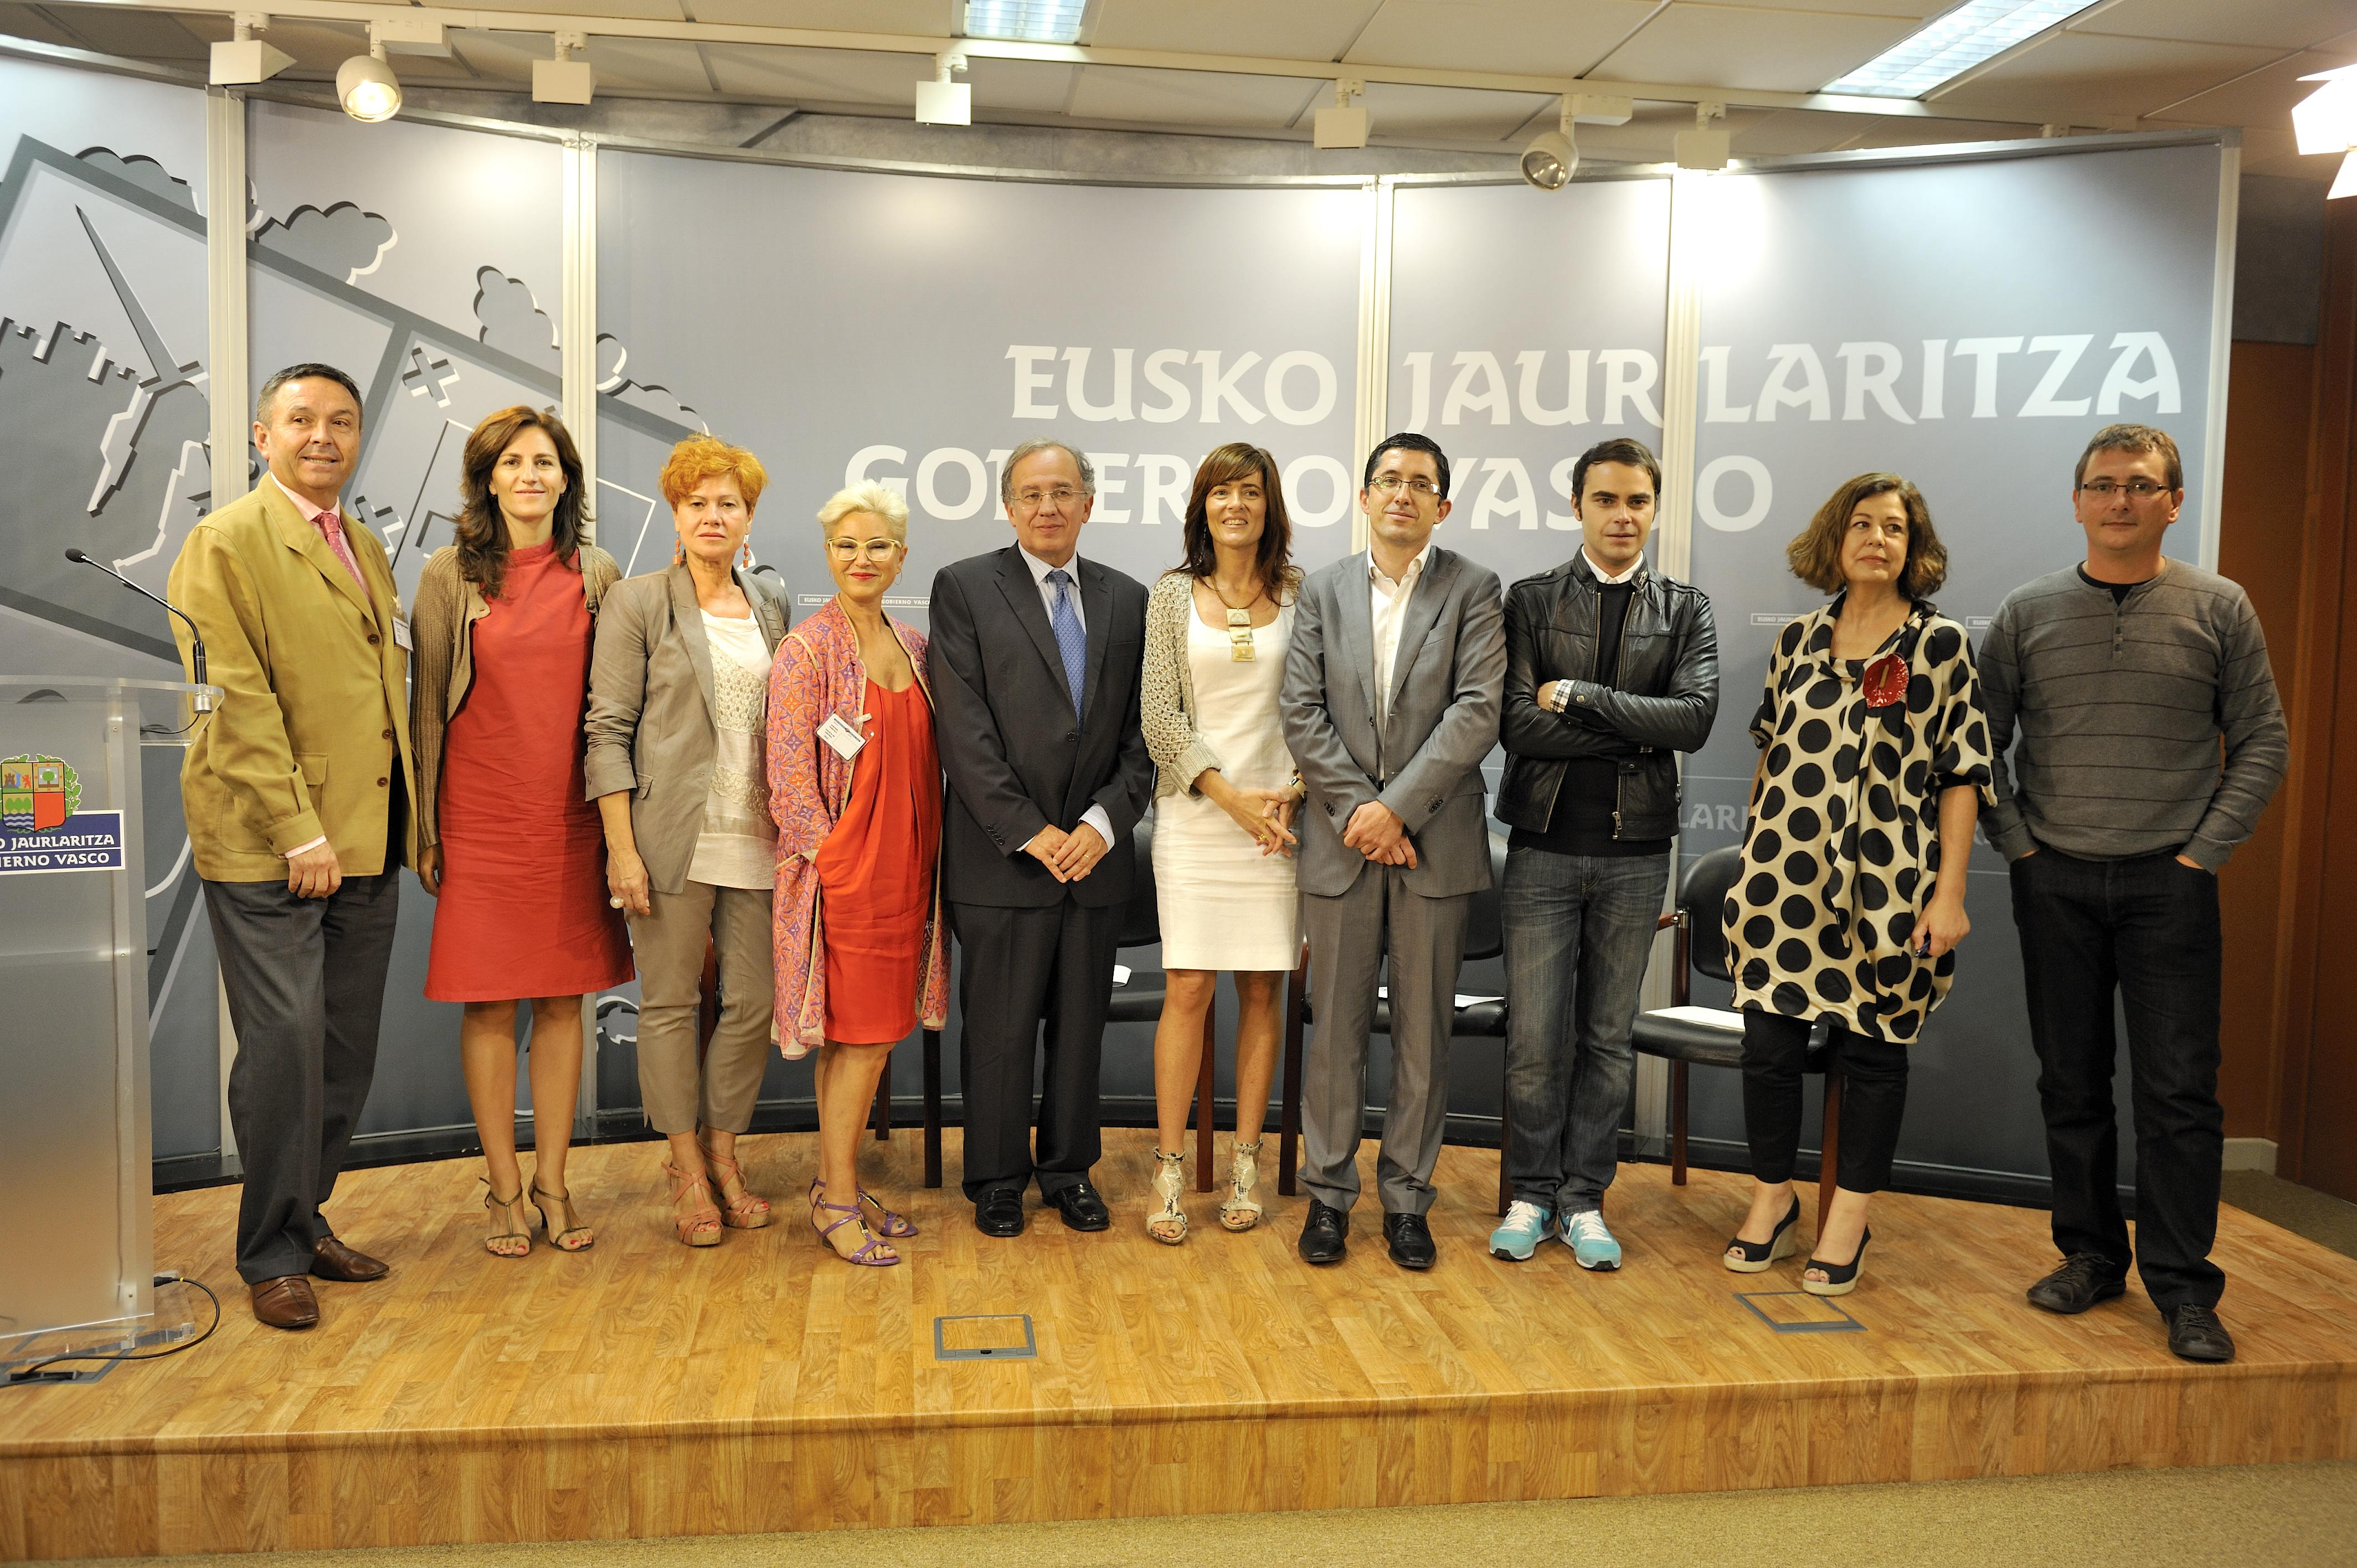 Gastronomy and Basque fashion represent the cornerstones of the Basque Week in the Shanghai Expo